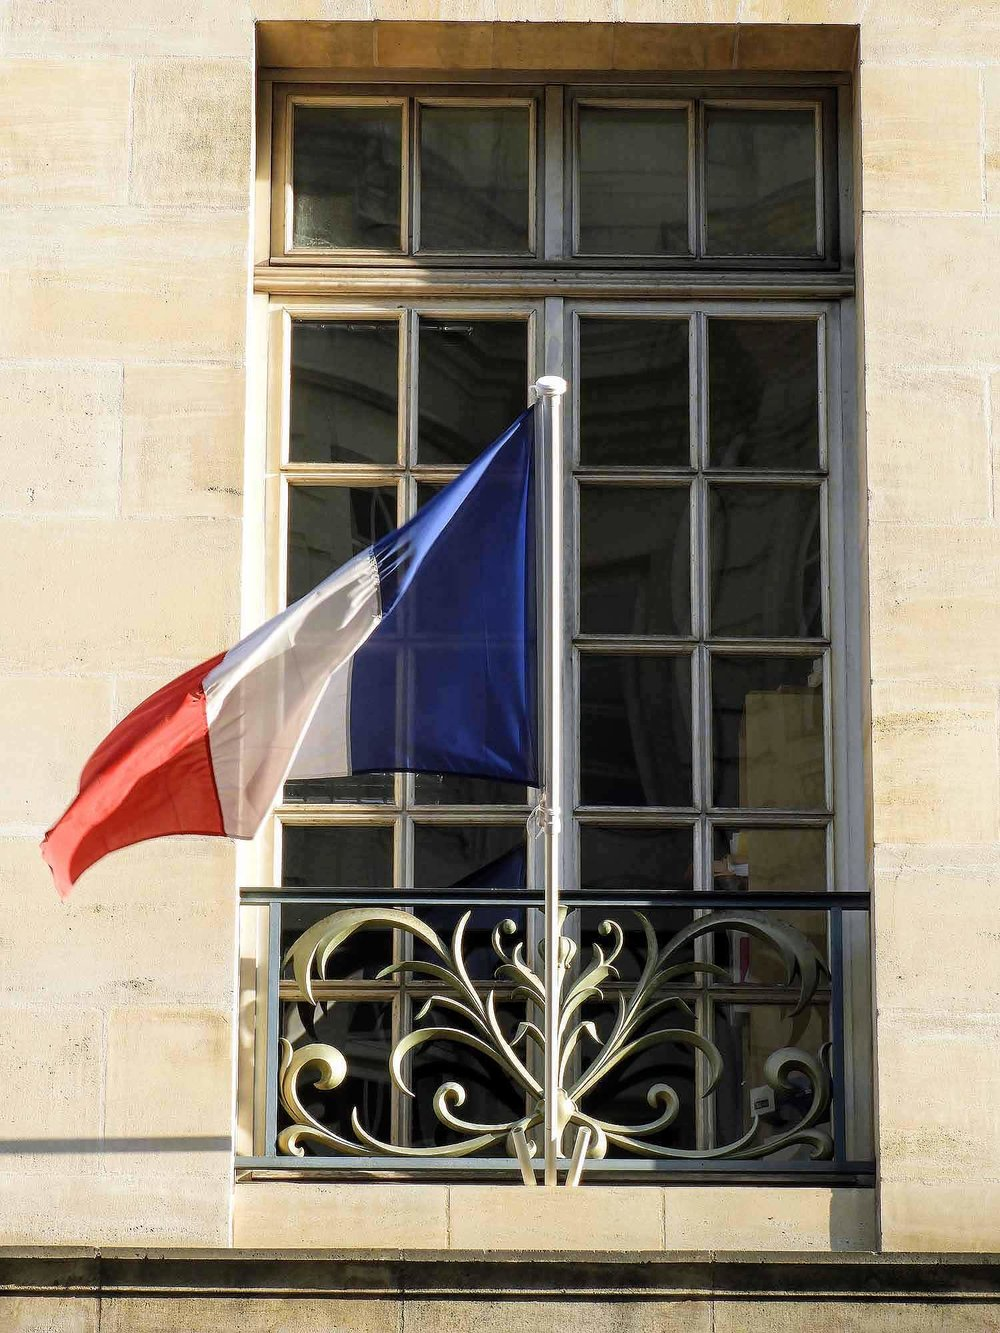 france-nancy-french-flag-window.jpg